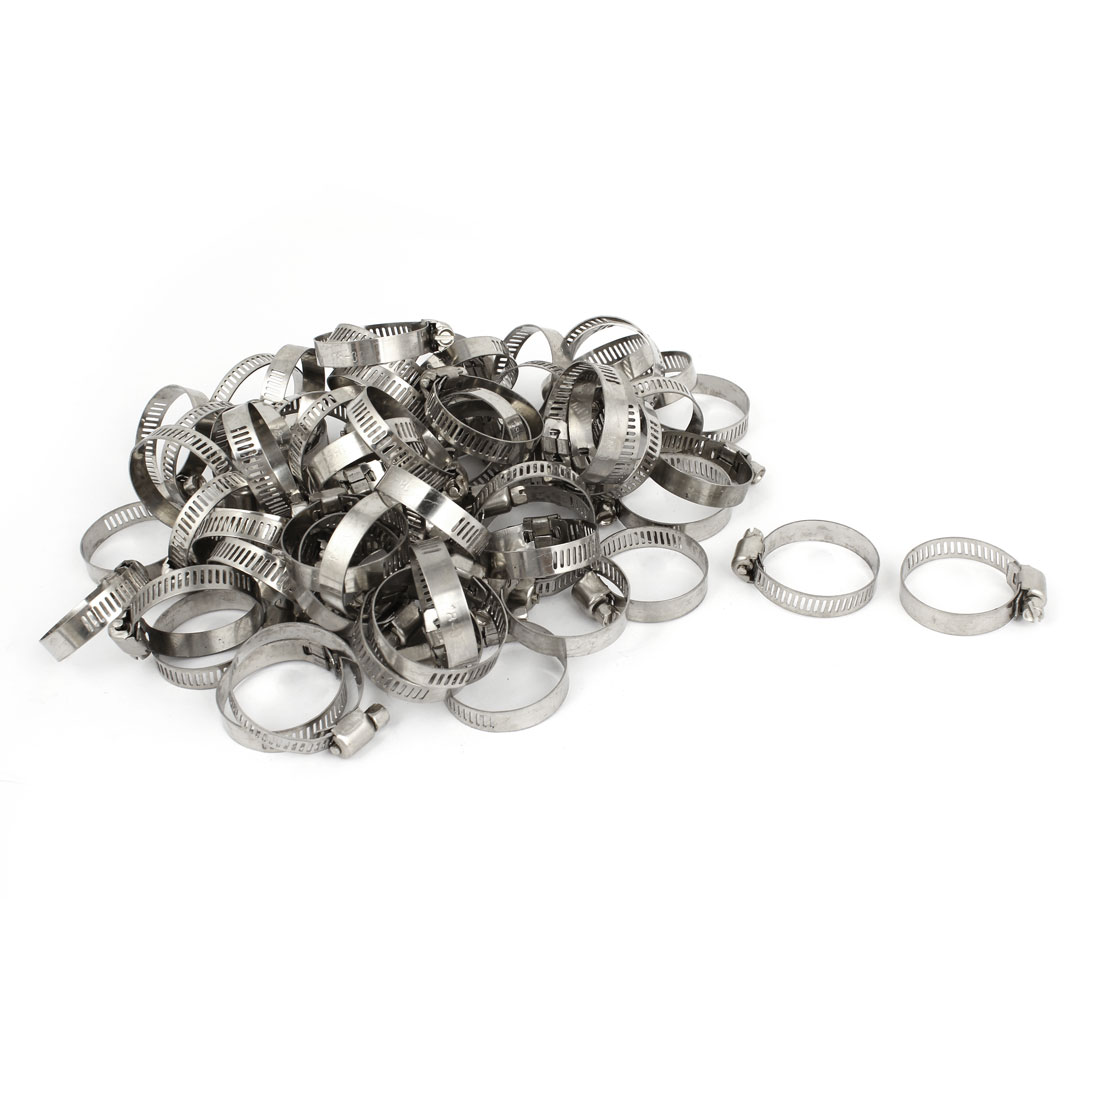 Silver Tone 18 -32mm Adjustable Worm Gear Hose Pipe Fitting Clamps 100 Pcs